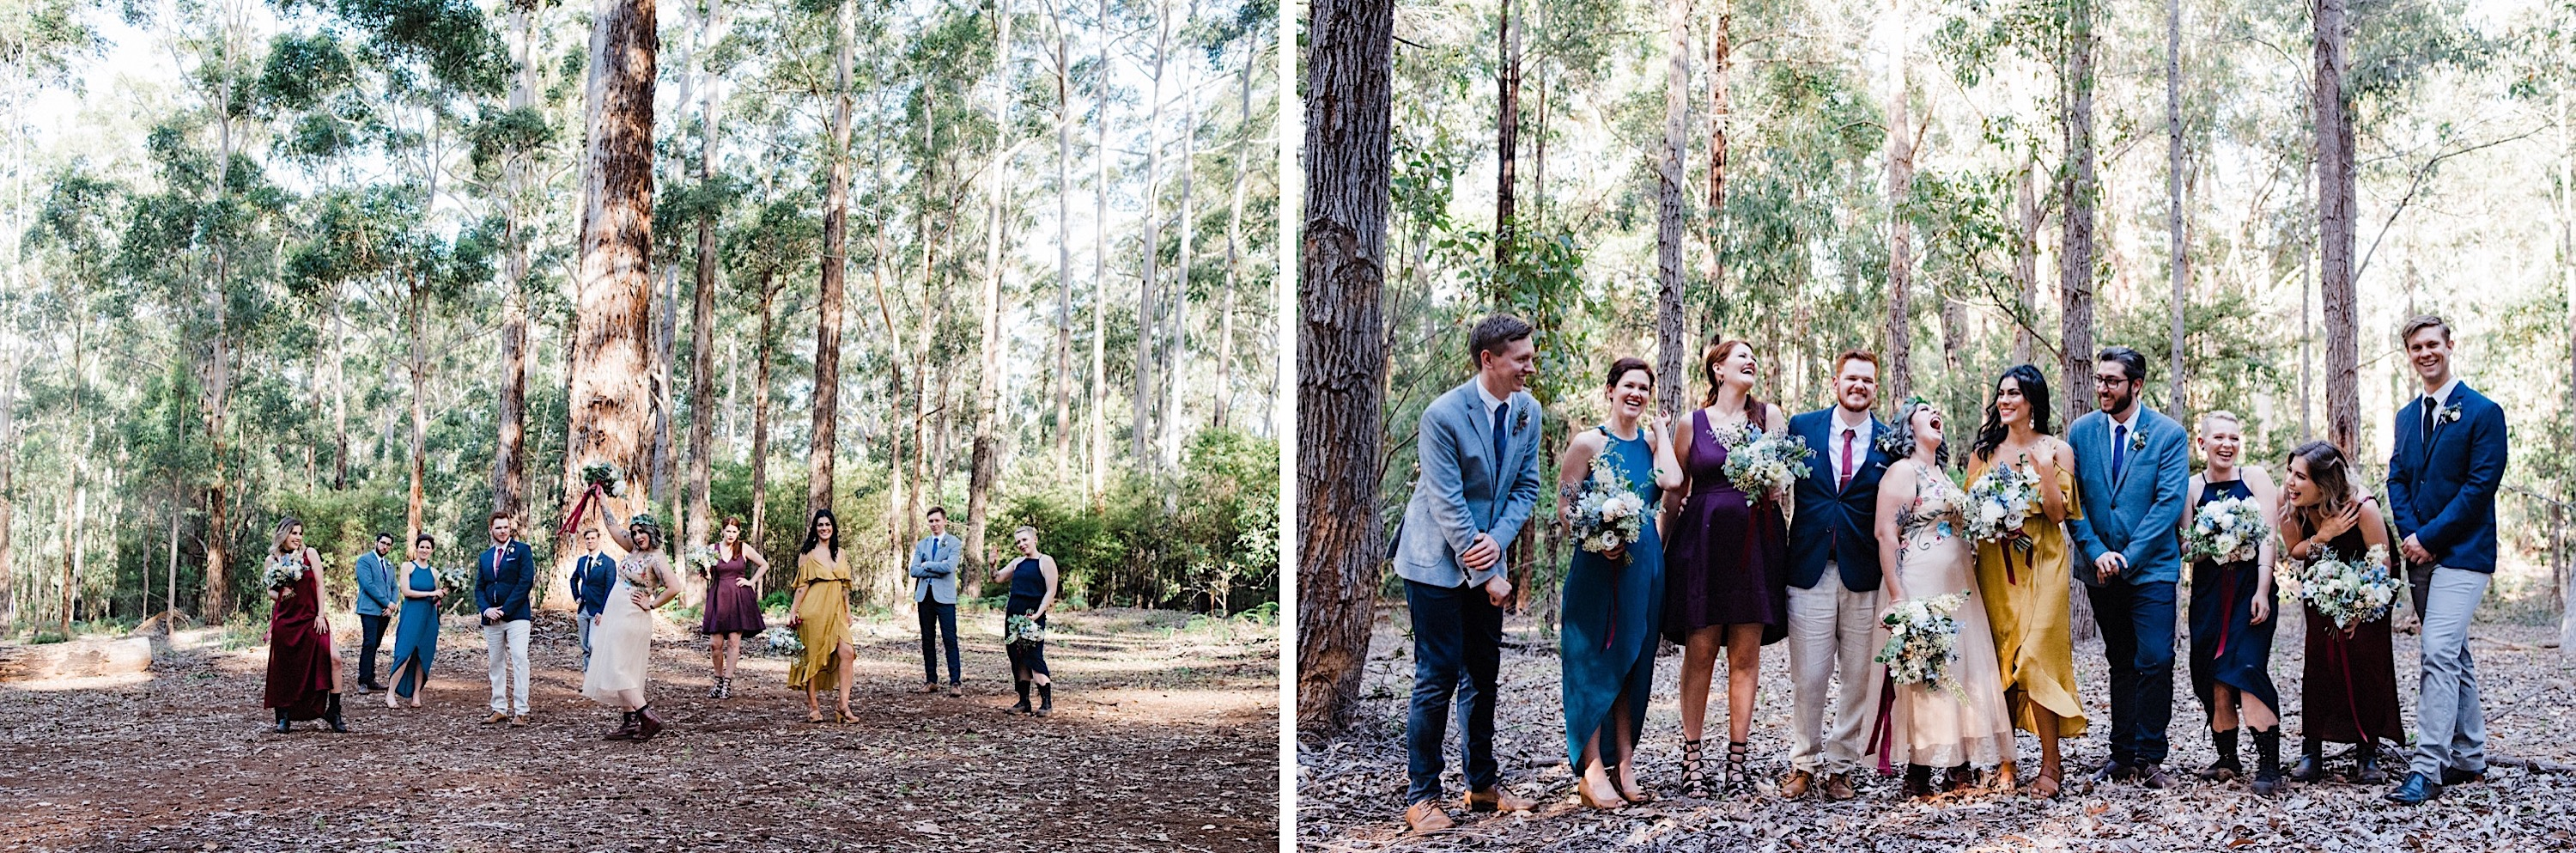 Wedding photos of the bridal party in the Karri Forest at Donnelly River Village